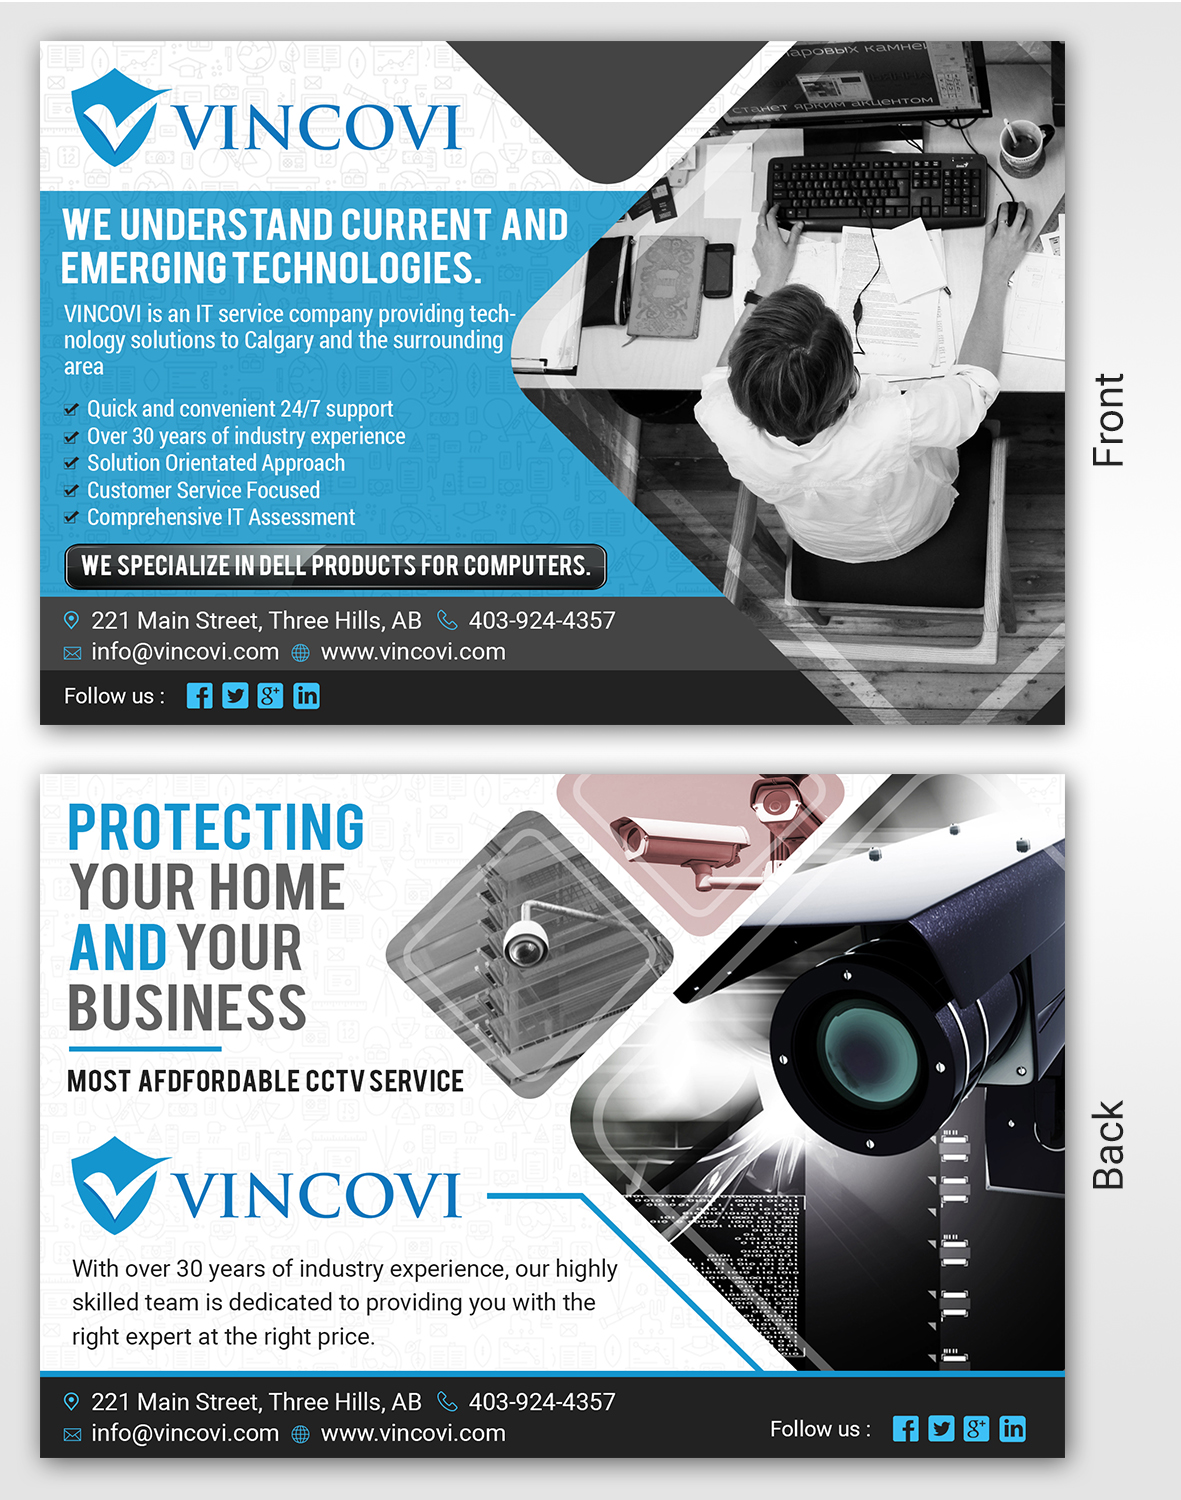 Modern Playful Computer Repair Flyer Design For VINCOVI